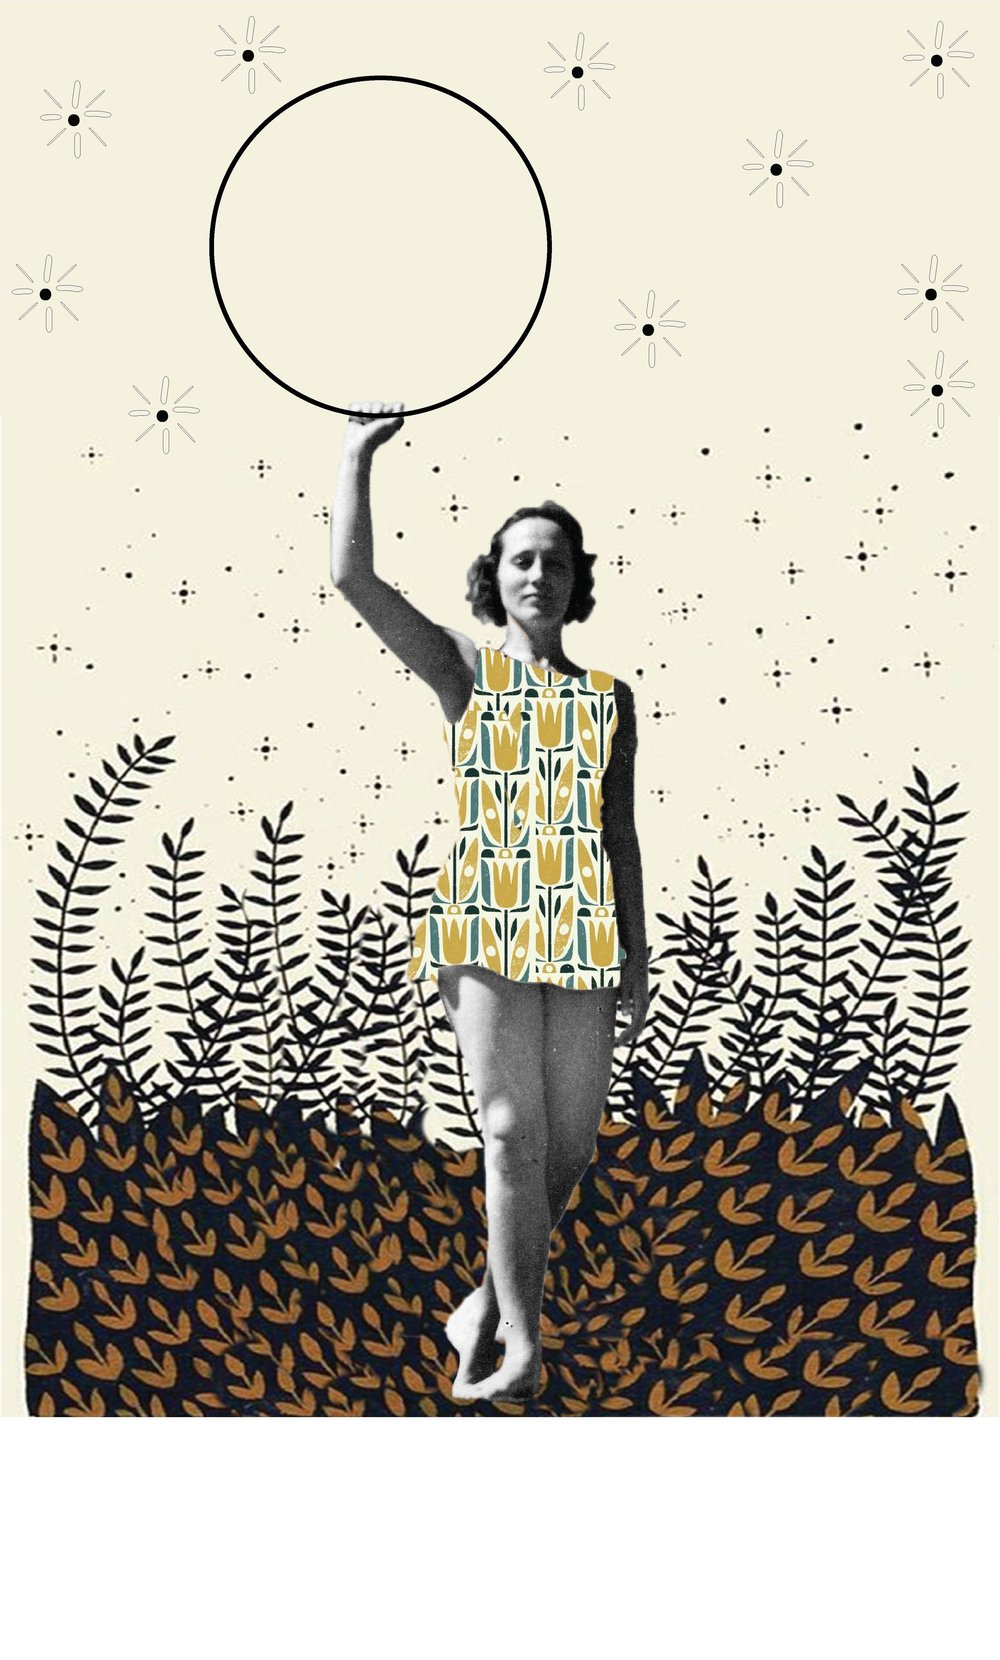 Vintage Athletes - Fabric design and film photography collage